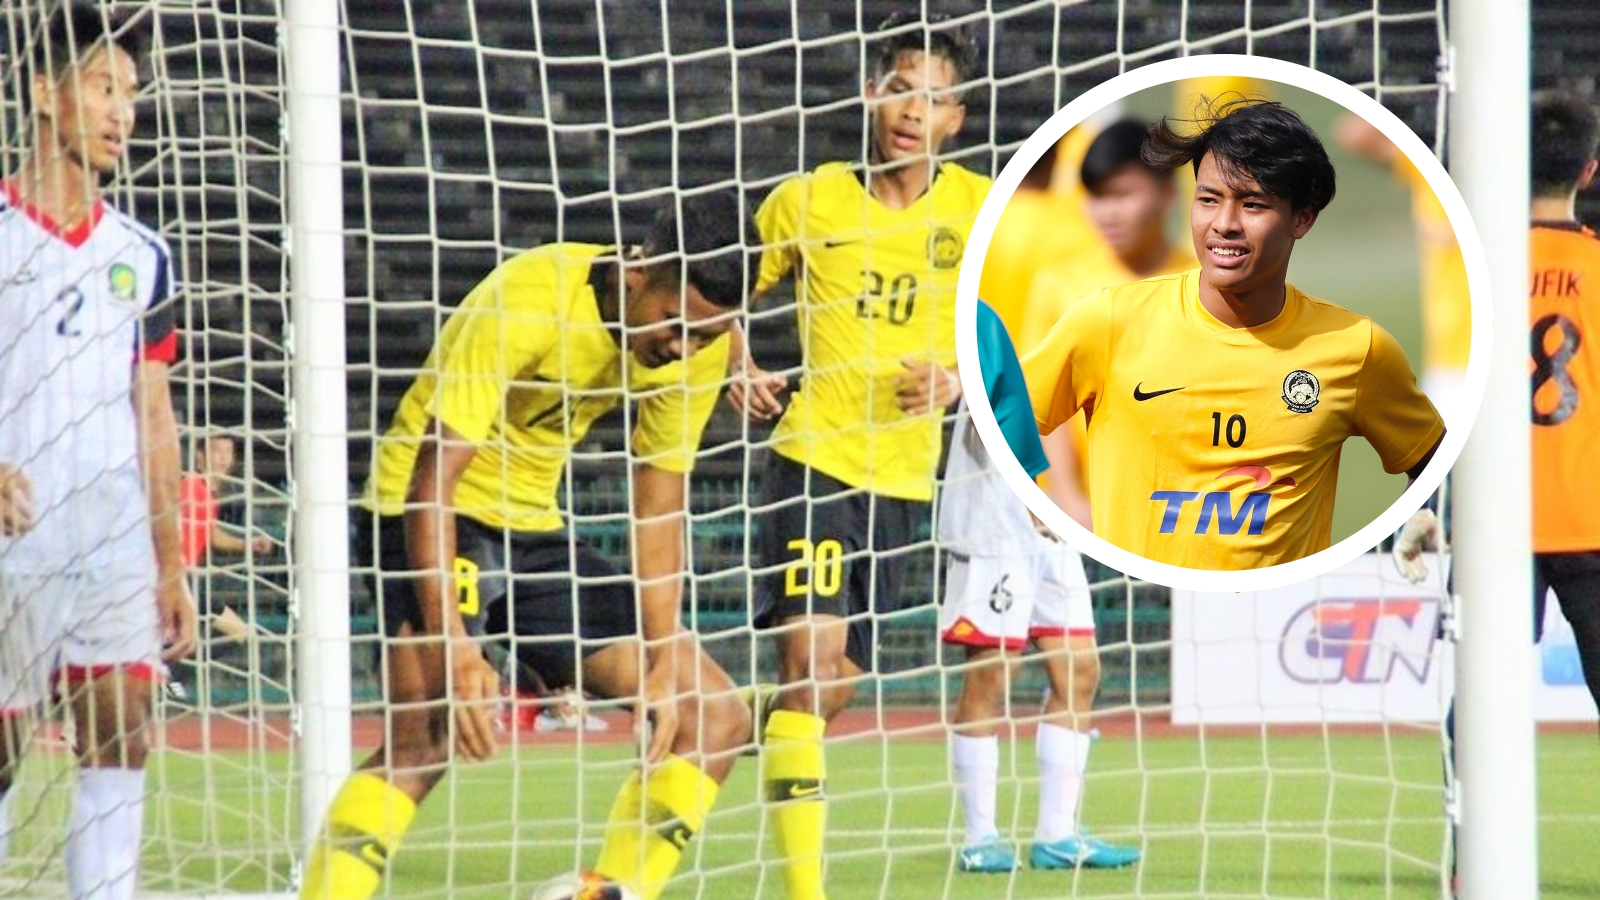 Luqman Hakim and Malaysia U-19's World Cup dream extinguished one day before Christmas